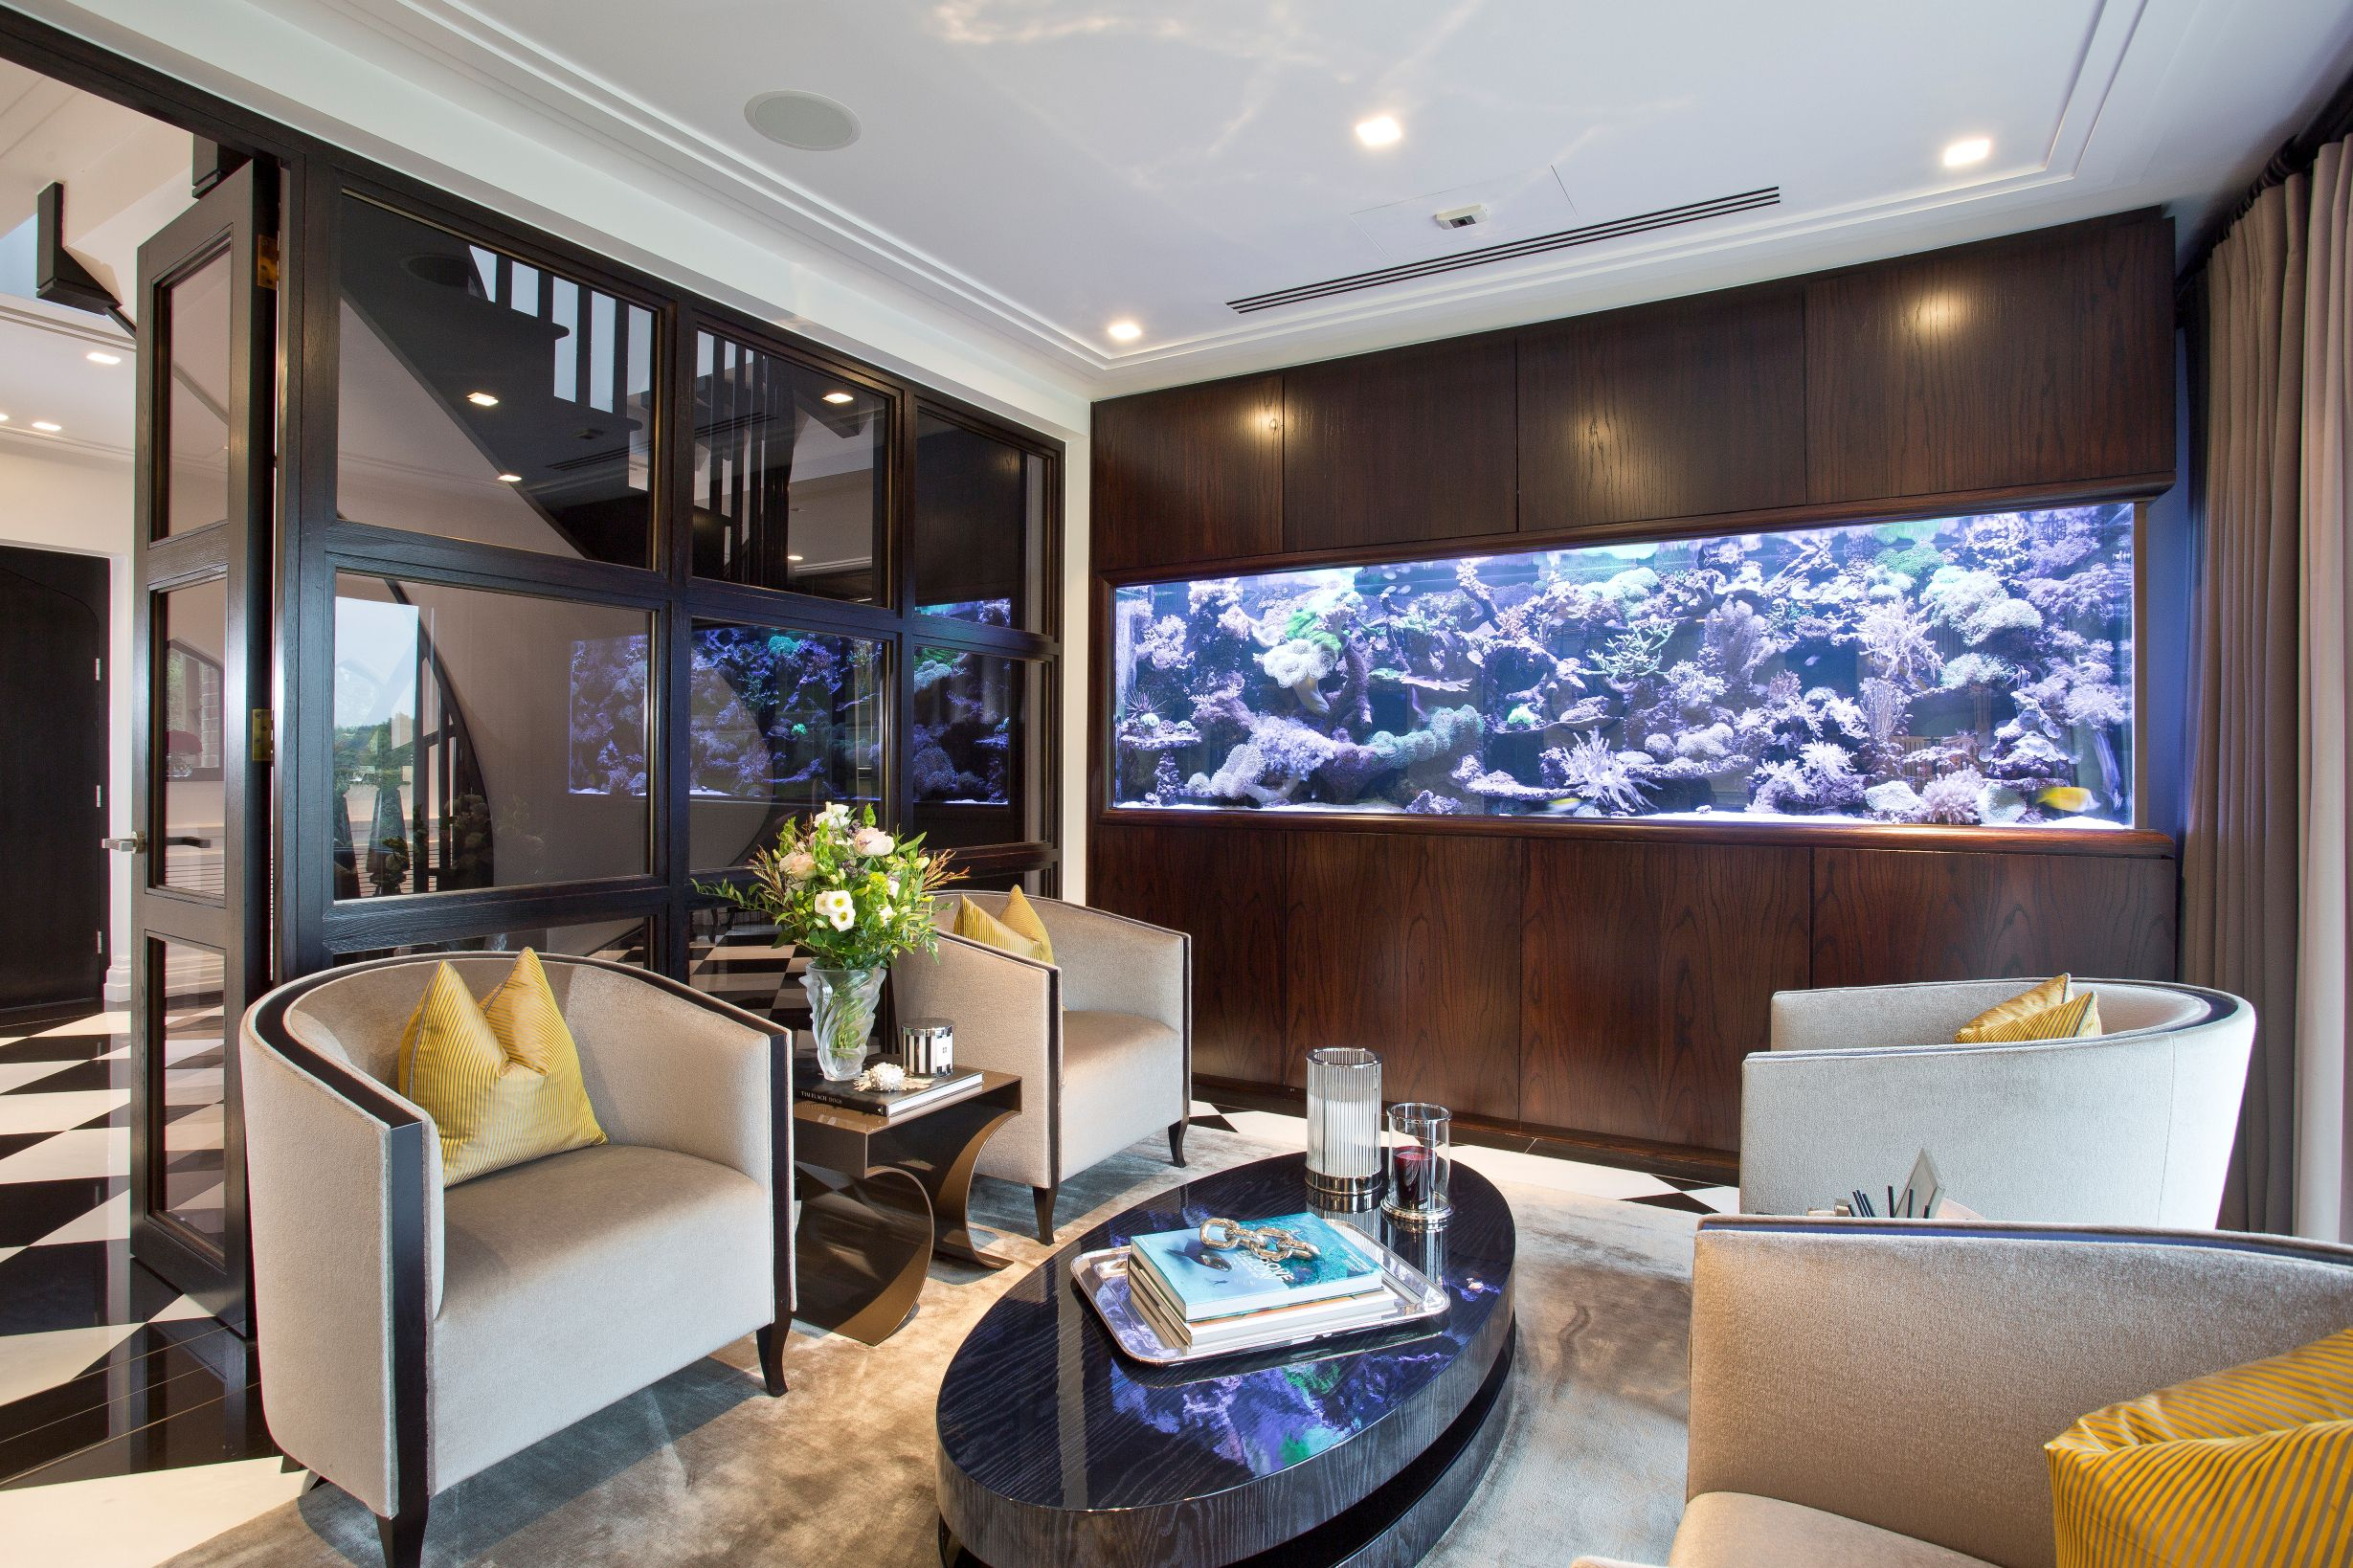 Property of the week: Large aquarium is highlight of stunning ...